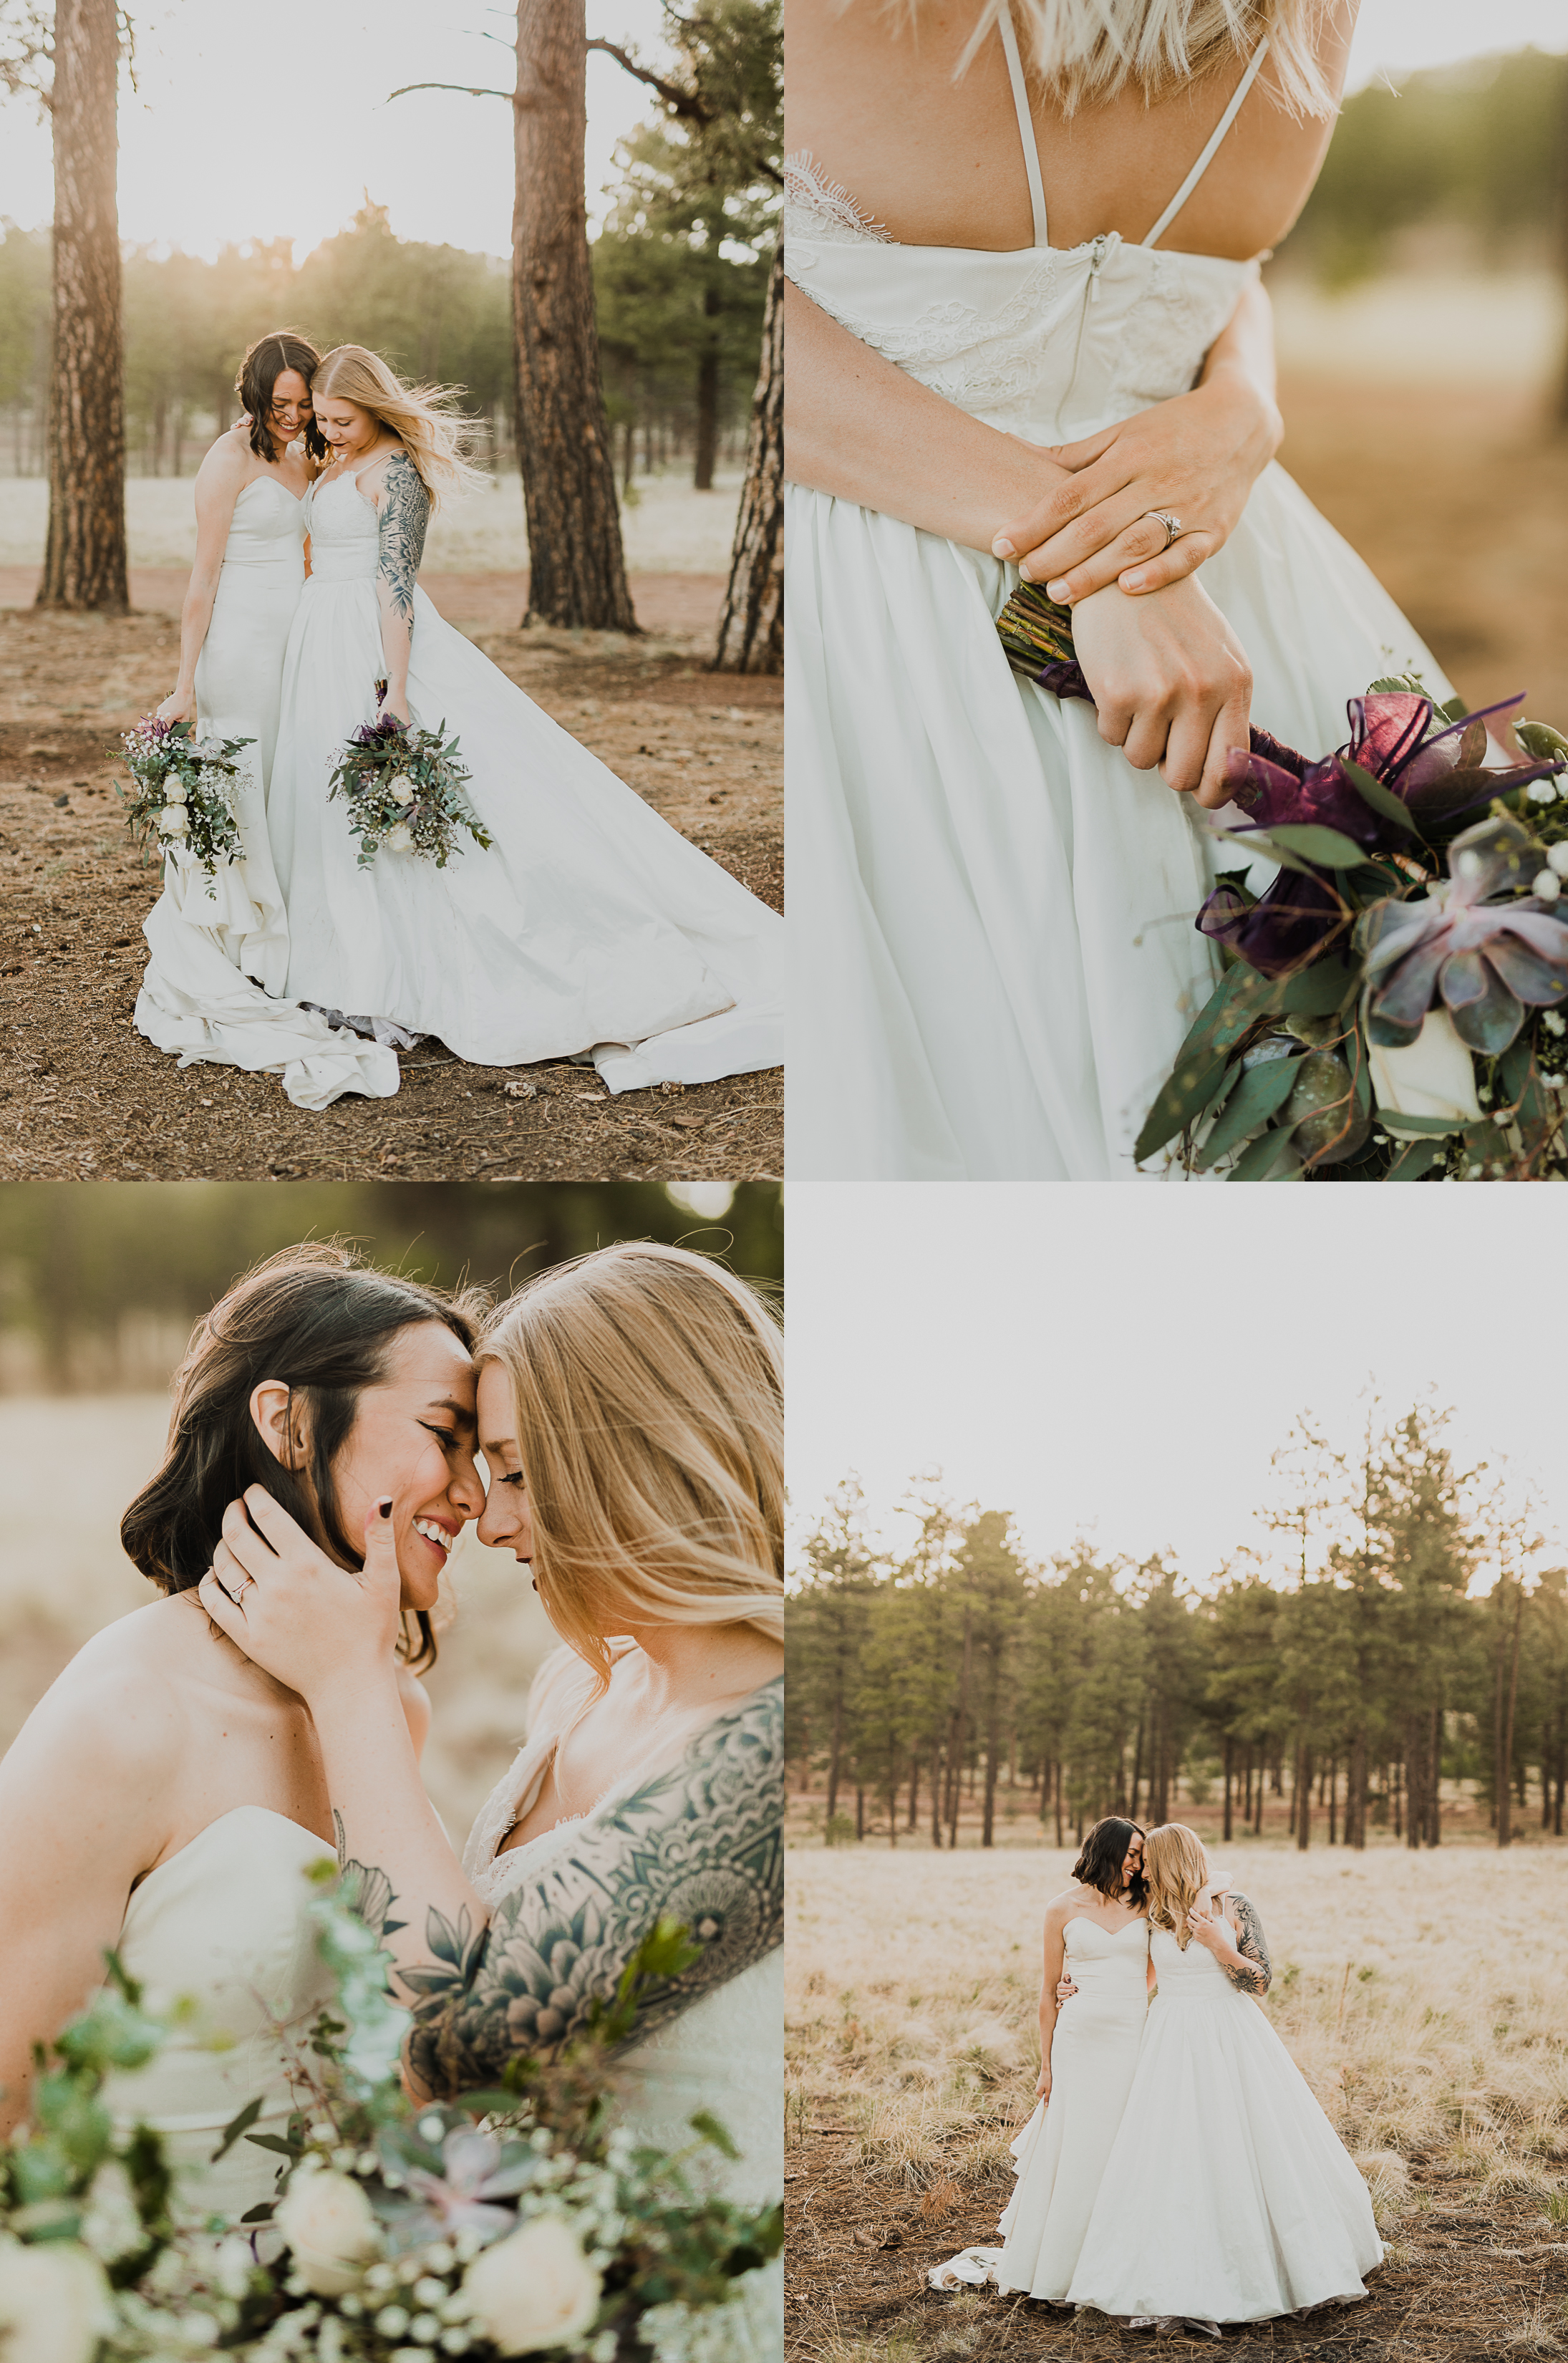 Denver Colorado Wedding Denver Colorado Wedding Elopement Engagement LGBT Gay Photographer Engagement LGBT Gay Photographer